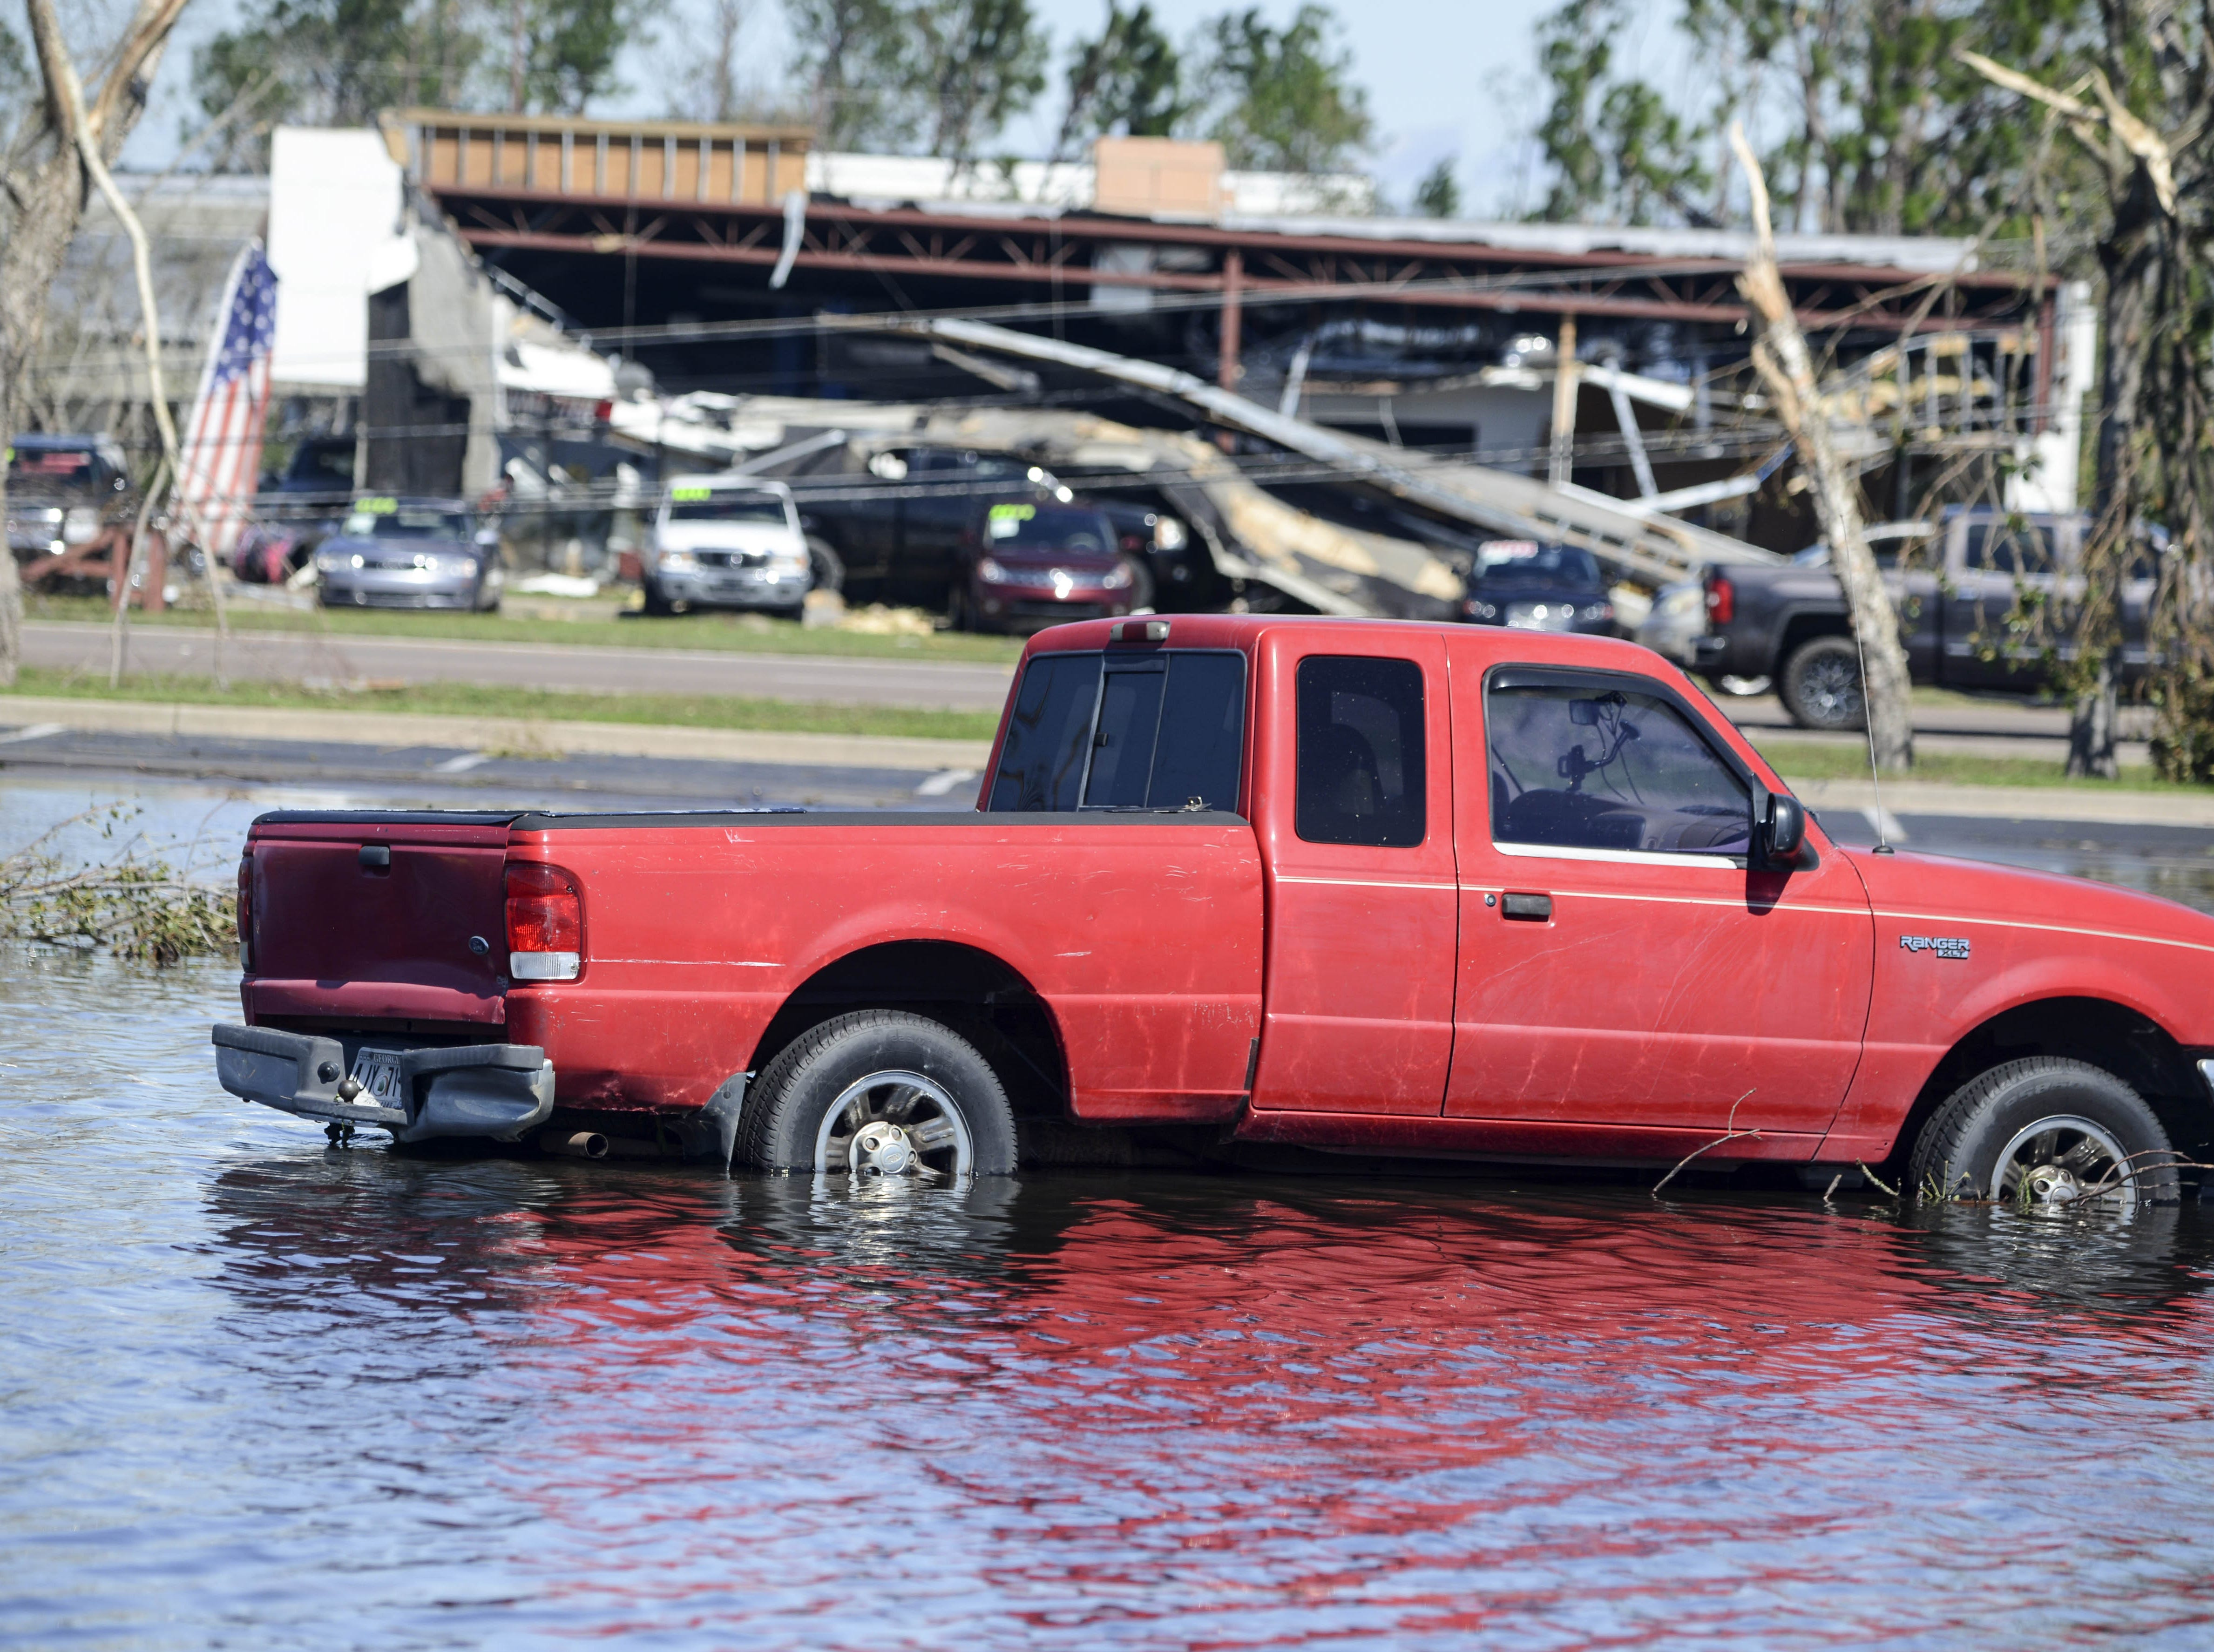 A pickup truck sits in a flooded parking lot in the Panama City Square shopping center in Panama City.